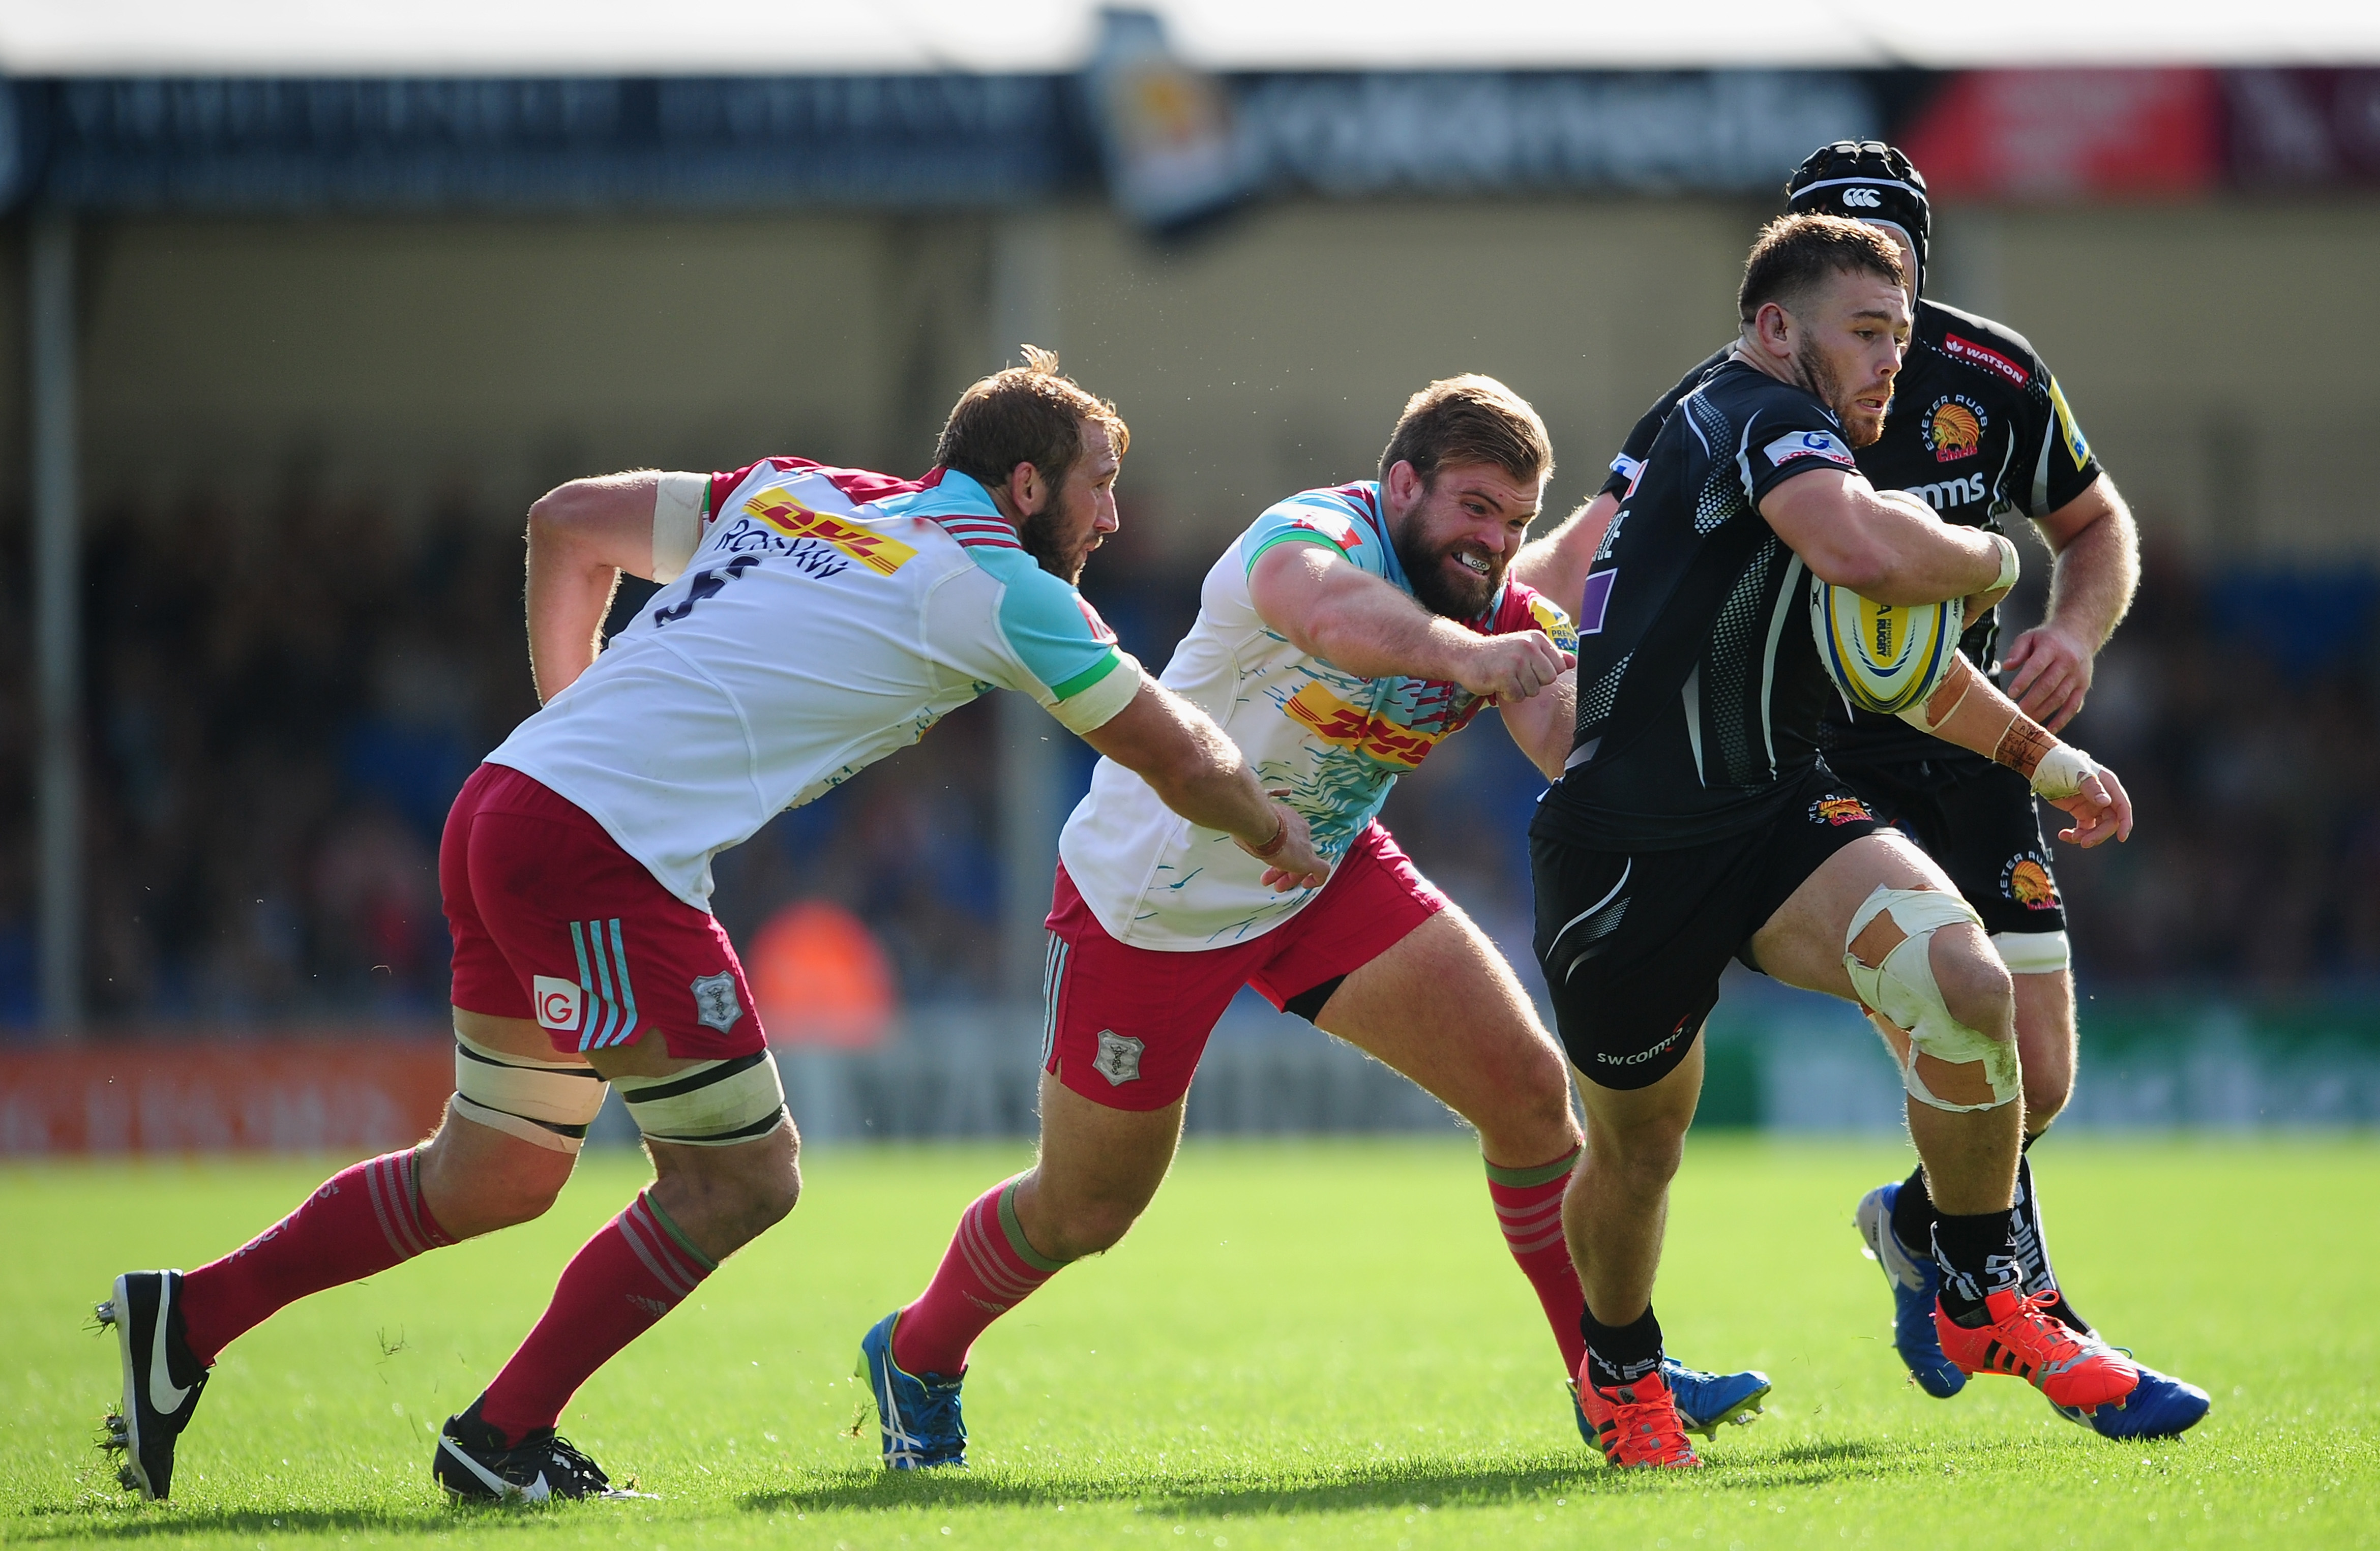 Match Report: Exeter Chiefs 36 Harlequins 25